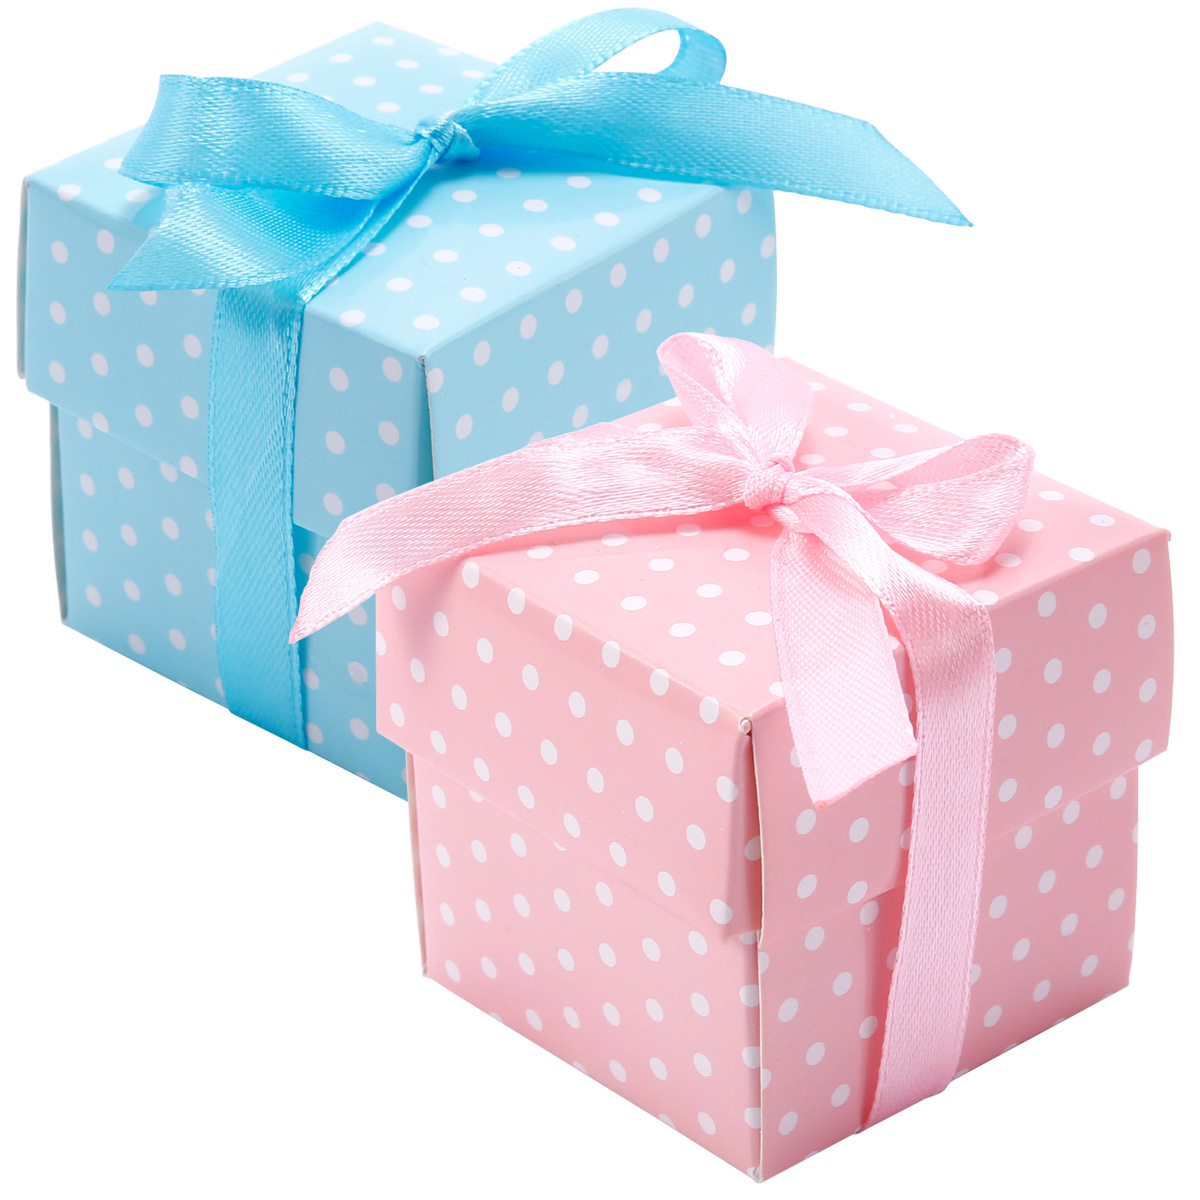 Details About 20 50x Candy Box Gift Bags Baby Shower Birthday Baptism Christening Party Favour